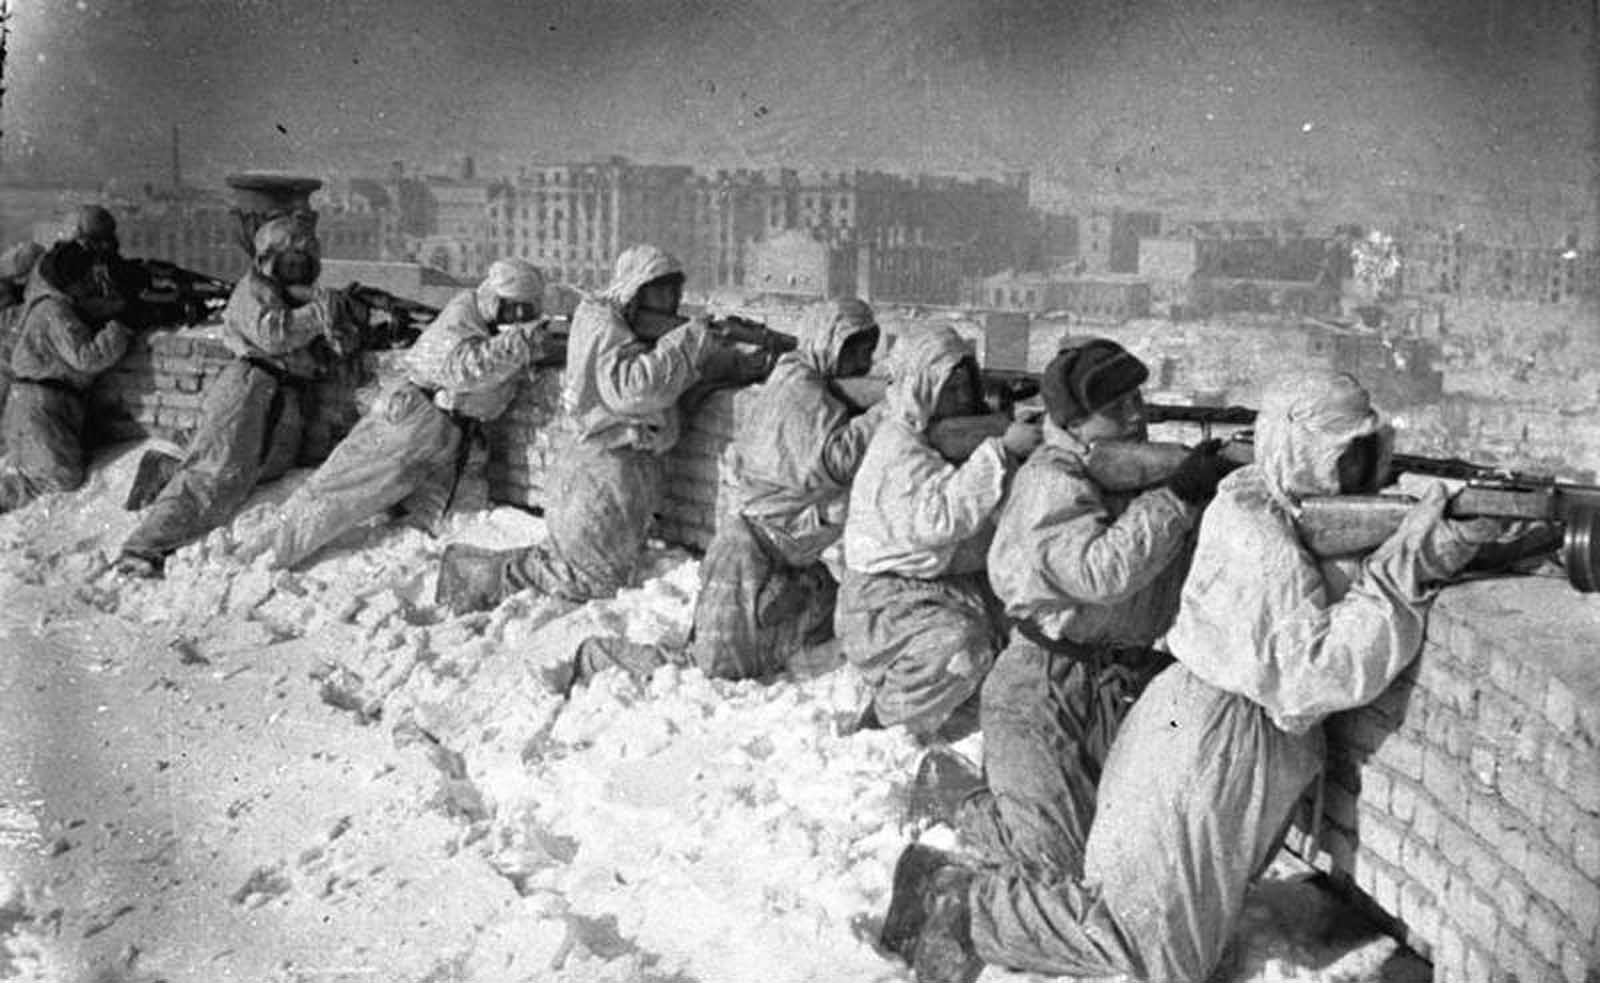 Soviet soldiers in camouflage winter uniforms line up along the roof of a house in Stalingrad, in January of 1943.